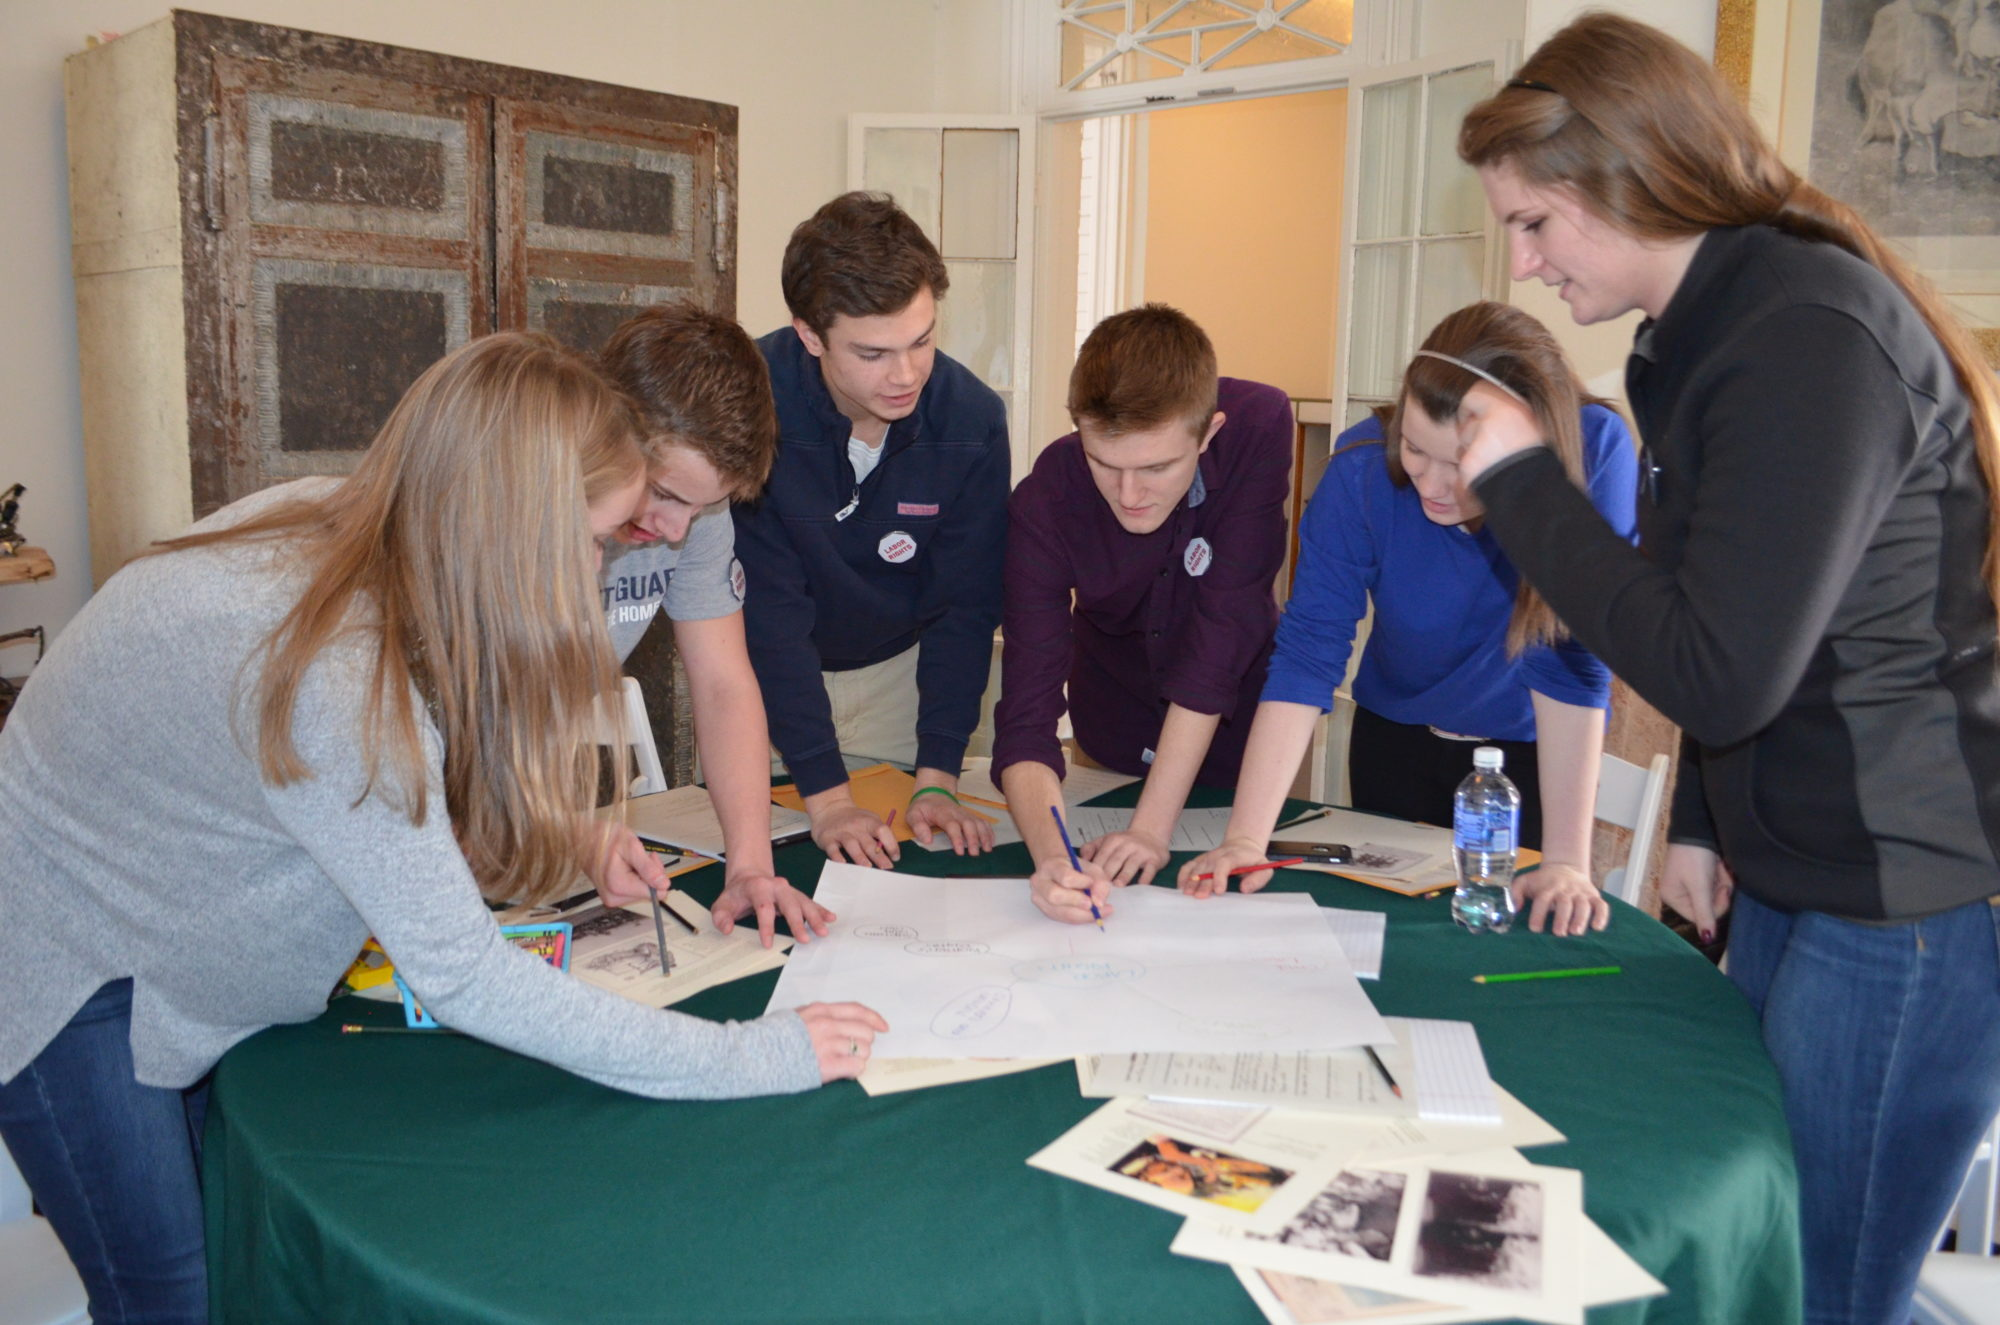 A group of teens around a table playing an Advocacy Game